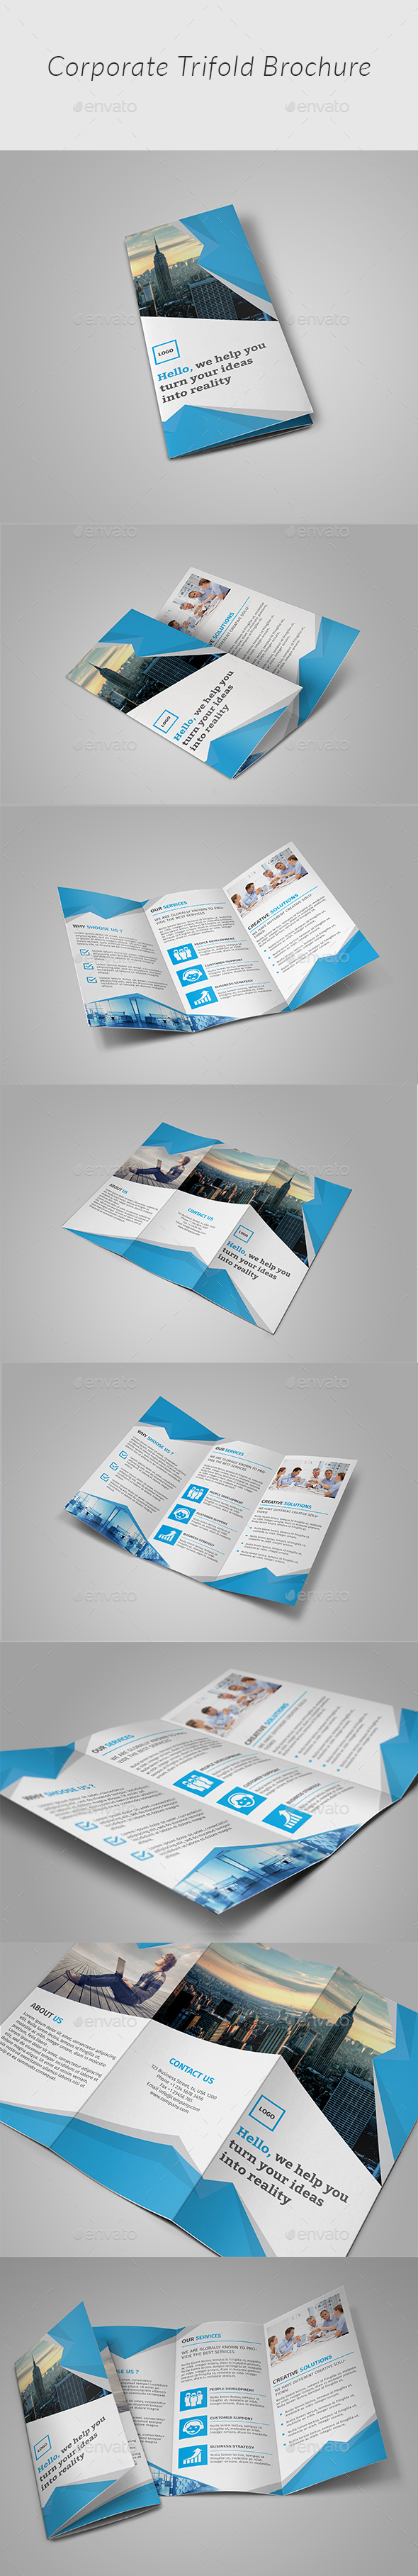 Corporate Trifold Brochure - Corporate Brochures